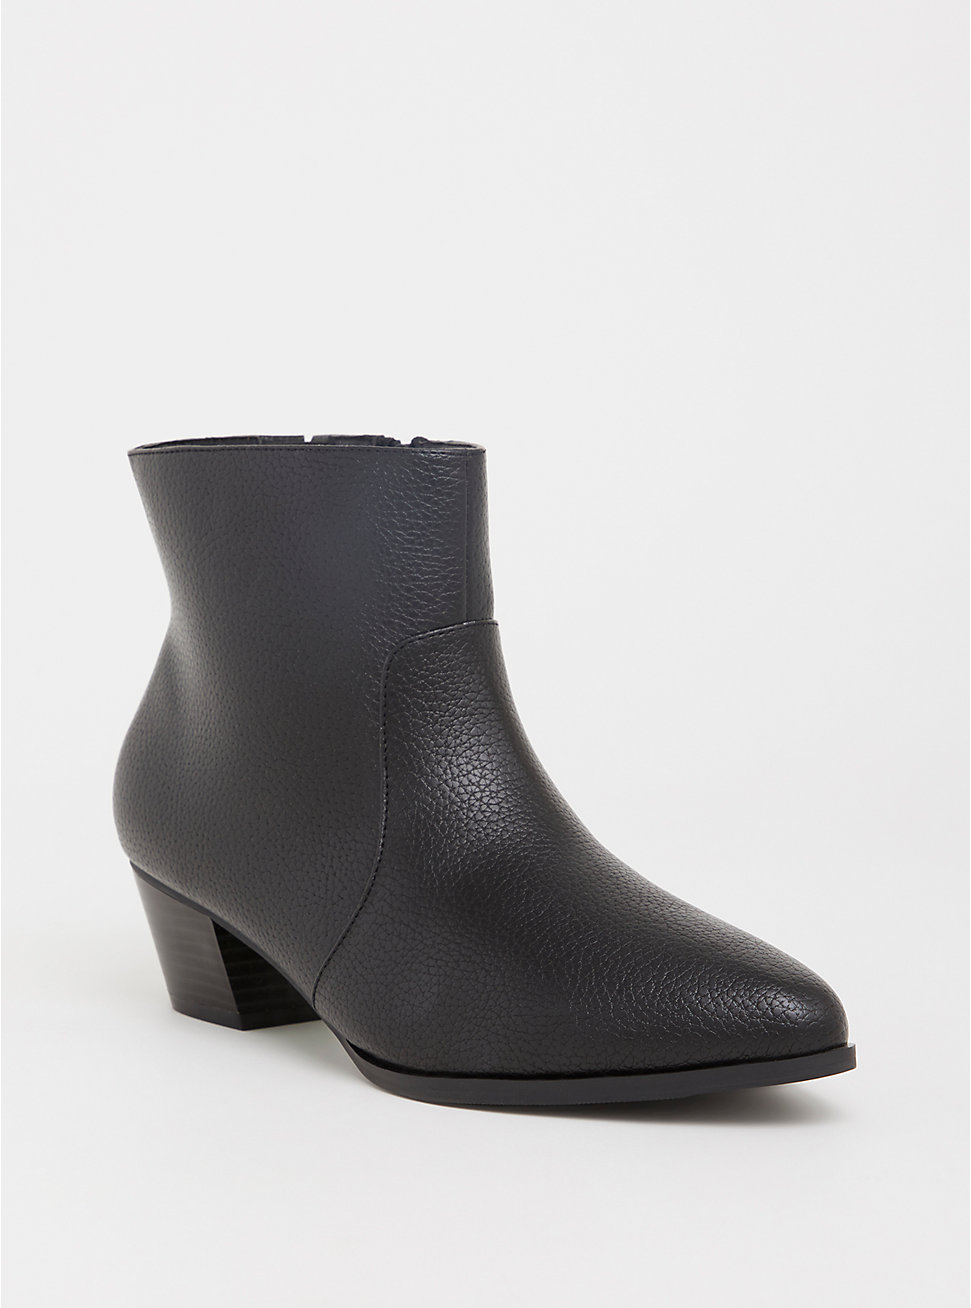 Black Faux Leather Pointed Bootie - Torrid ($64.90)